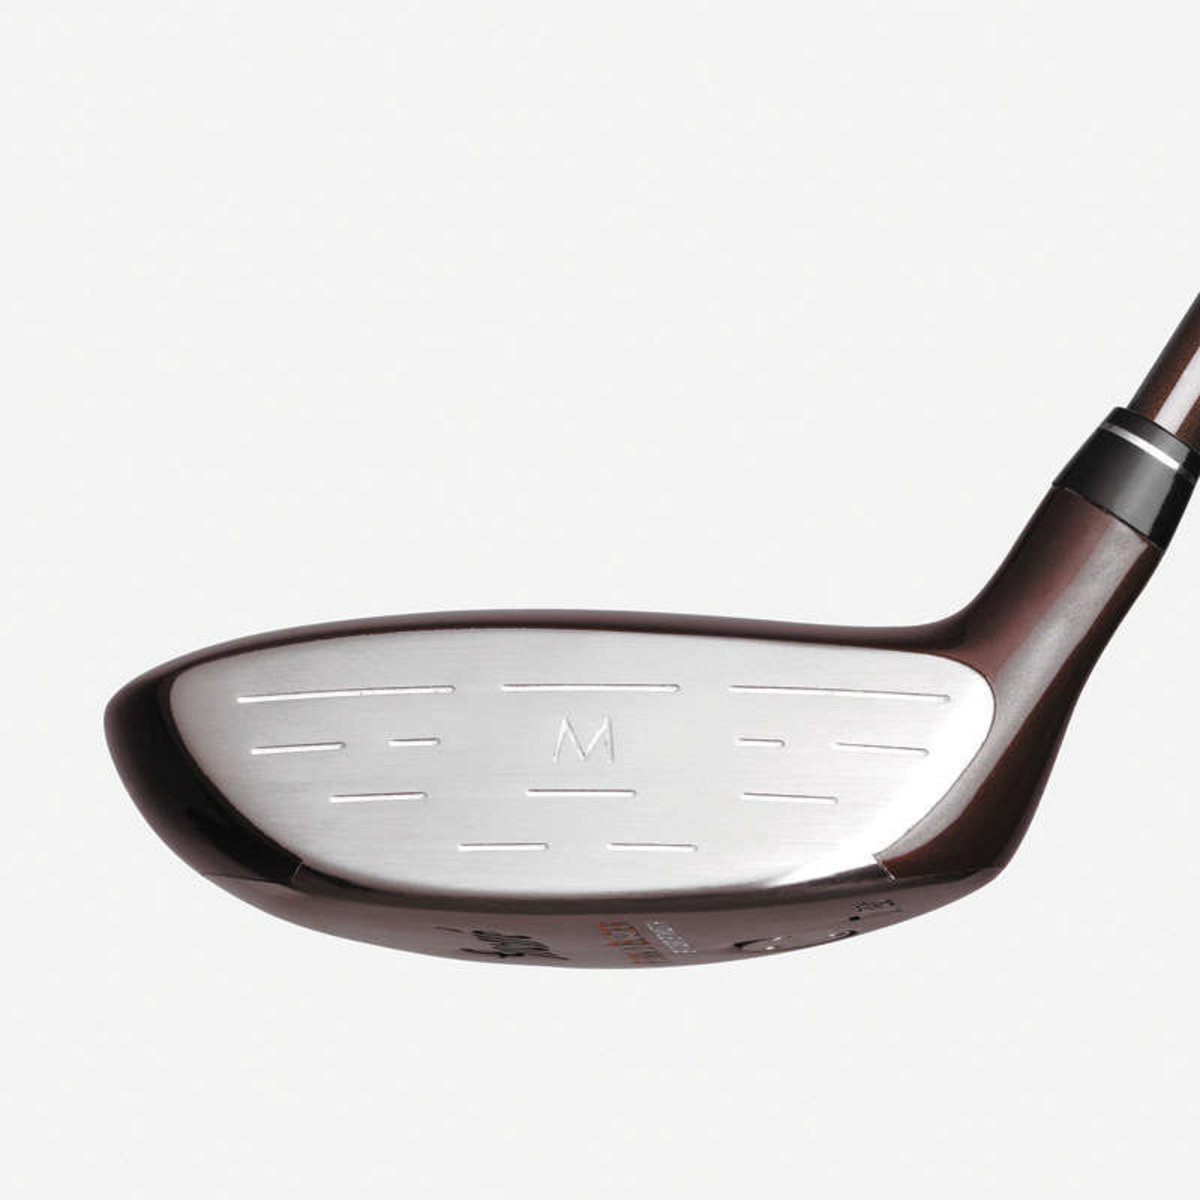 Fairway Blazer fairway wood - 7L